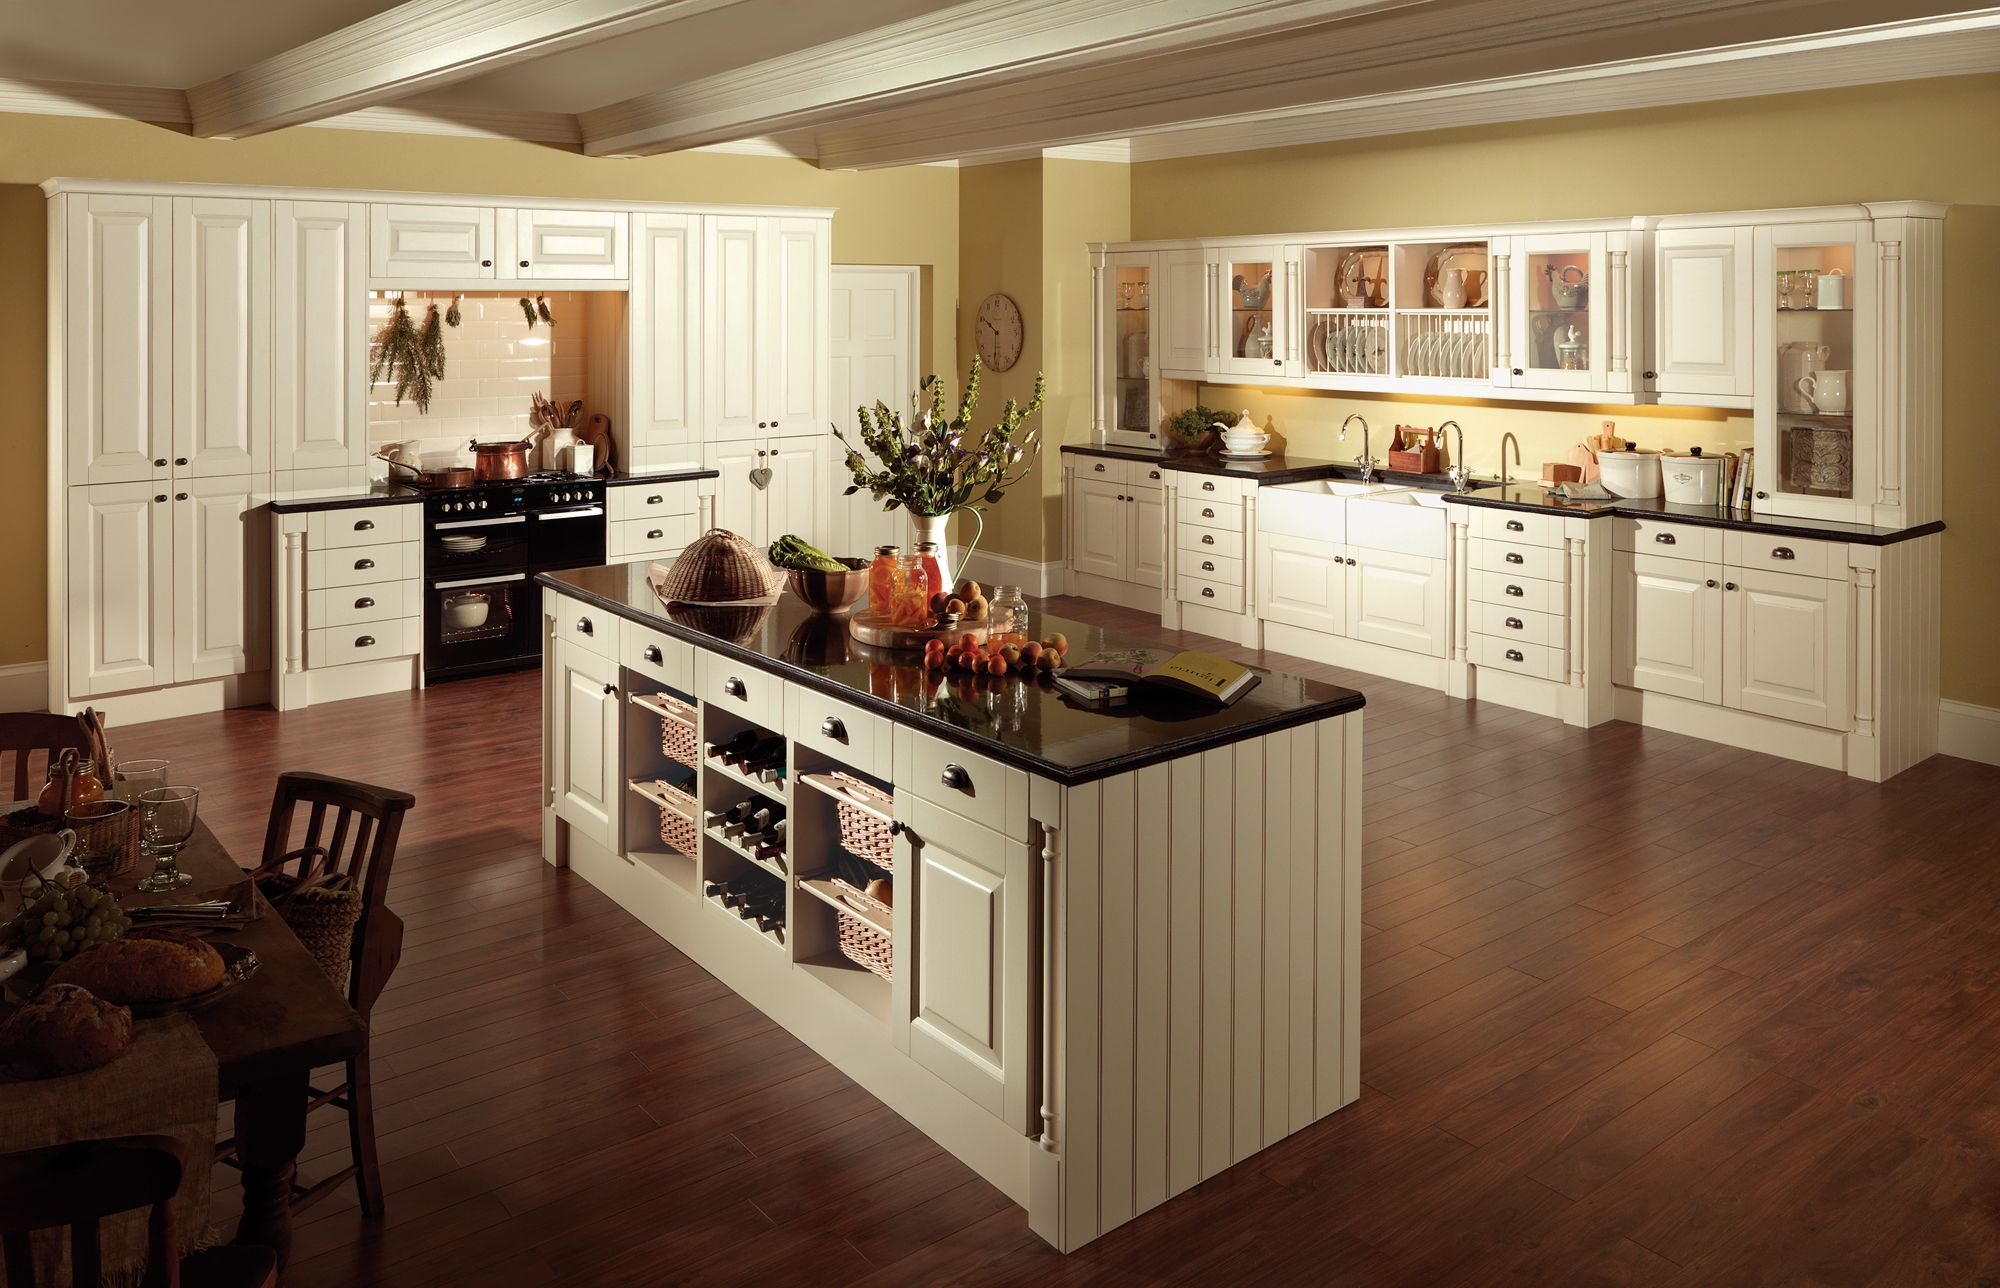 kitchen design bradford. Image Result For Pioneer Style Cabinetry Kitchen Pinterest Endearing  Design Bradford Review On Avon